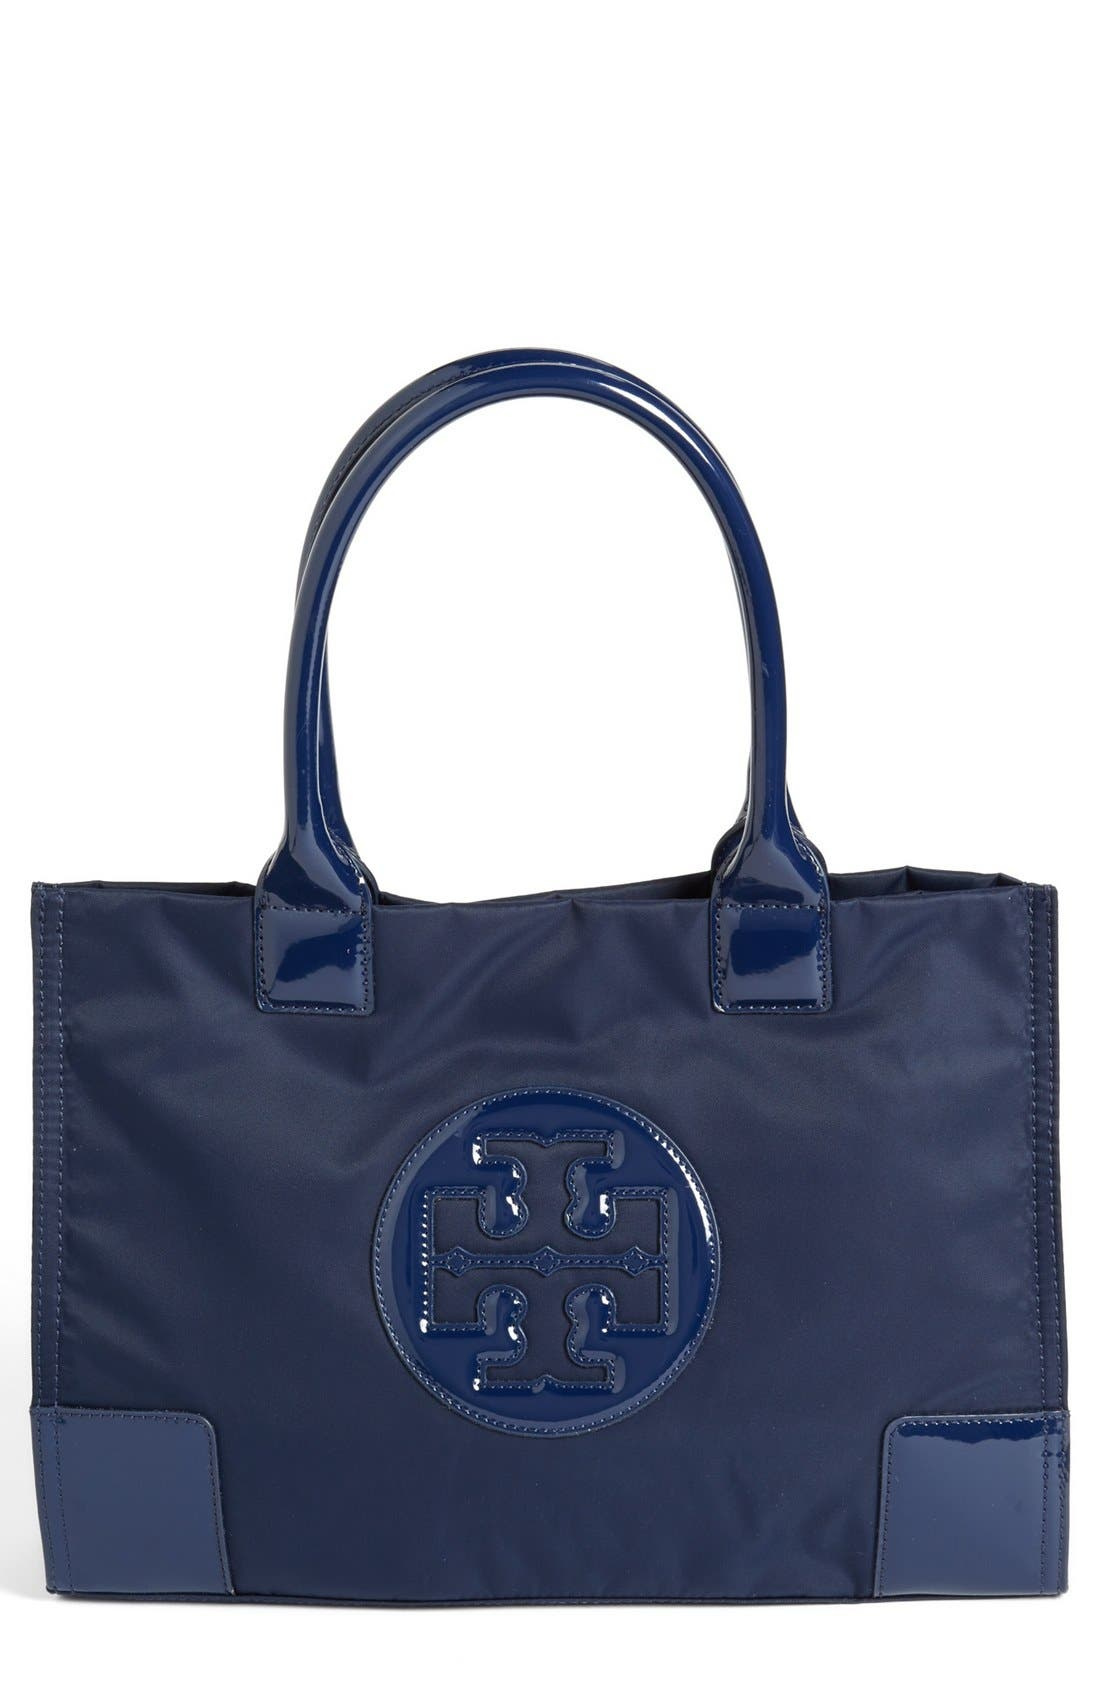 Main Image - Tory Burch 'Ella - Mini' Tote